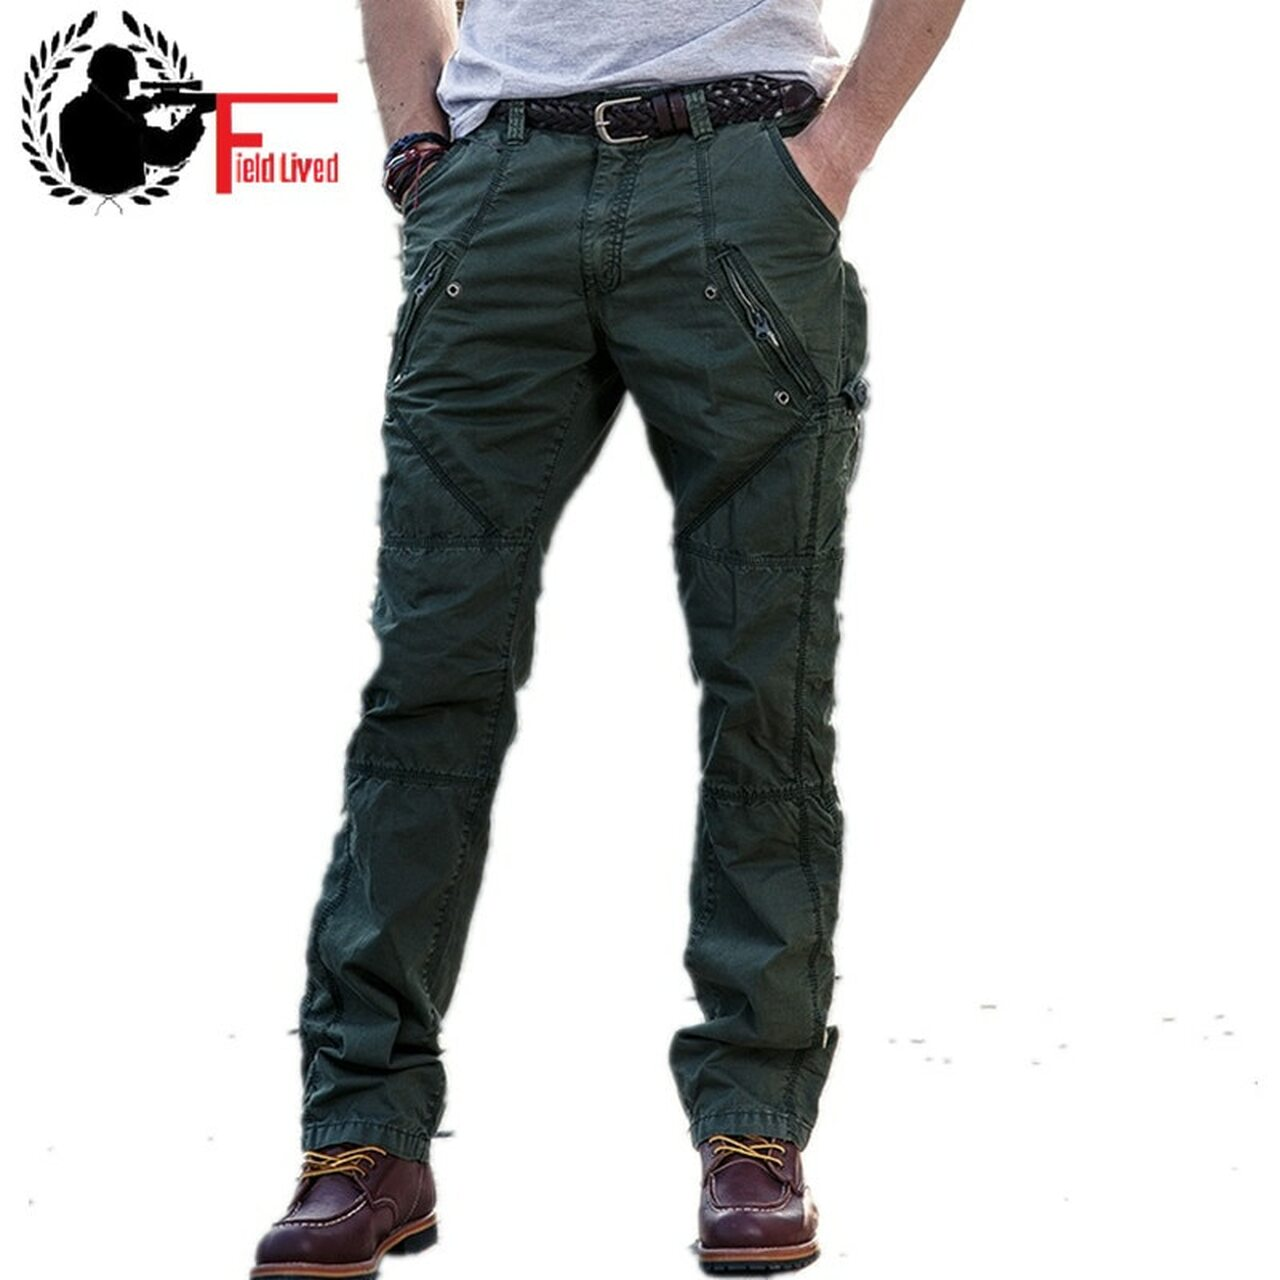 dbf8ee56b2 Multi-Pocket Men's Military Cargo Pants Loose Style Men Pants Tactical  Casual Long Trousers Male ...